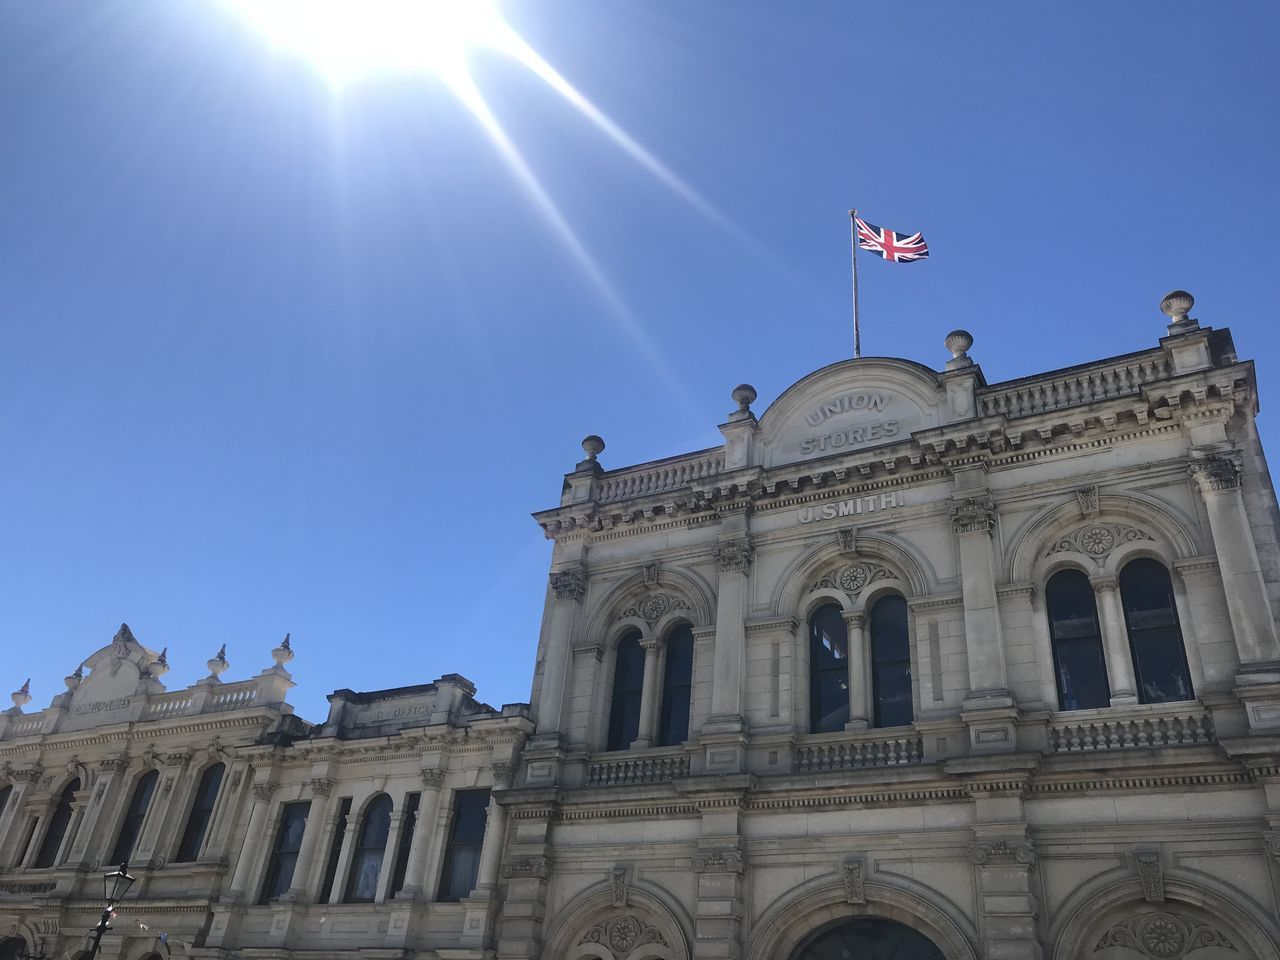 built structure, sky, low angle view, building exterior, architecture, flag, sunlight, day, clear sky, travel destinations, the past, nature, patriotism, history, sunbeam, travel, no people, city, tourism, building, lens flare, sun, outdoors, government, bright